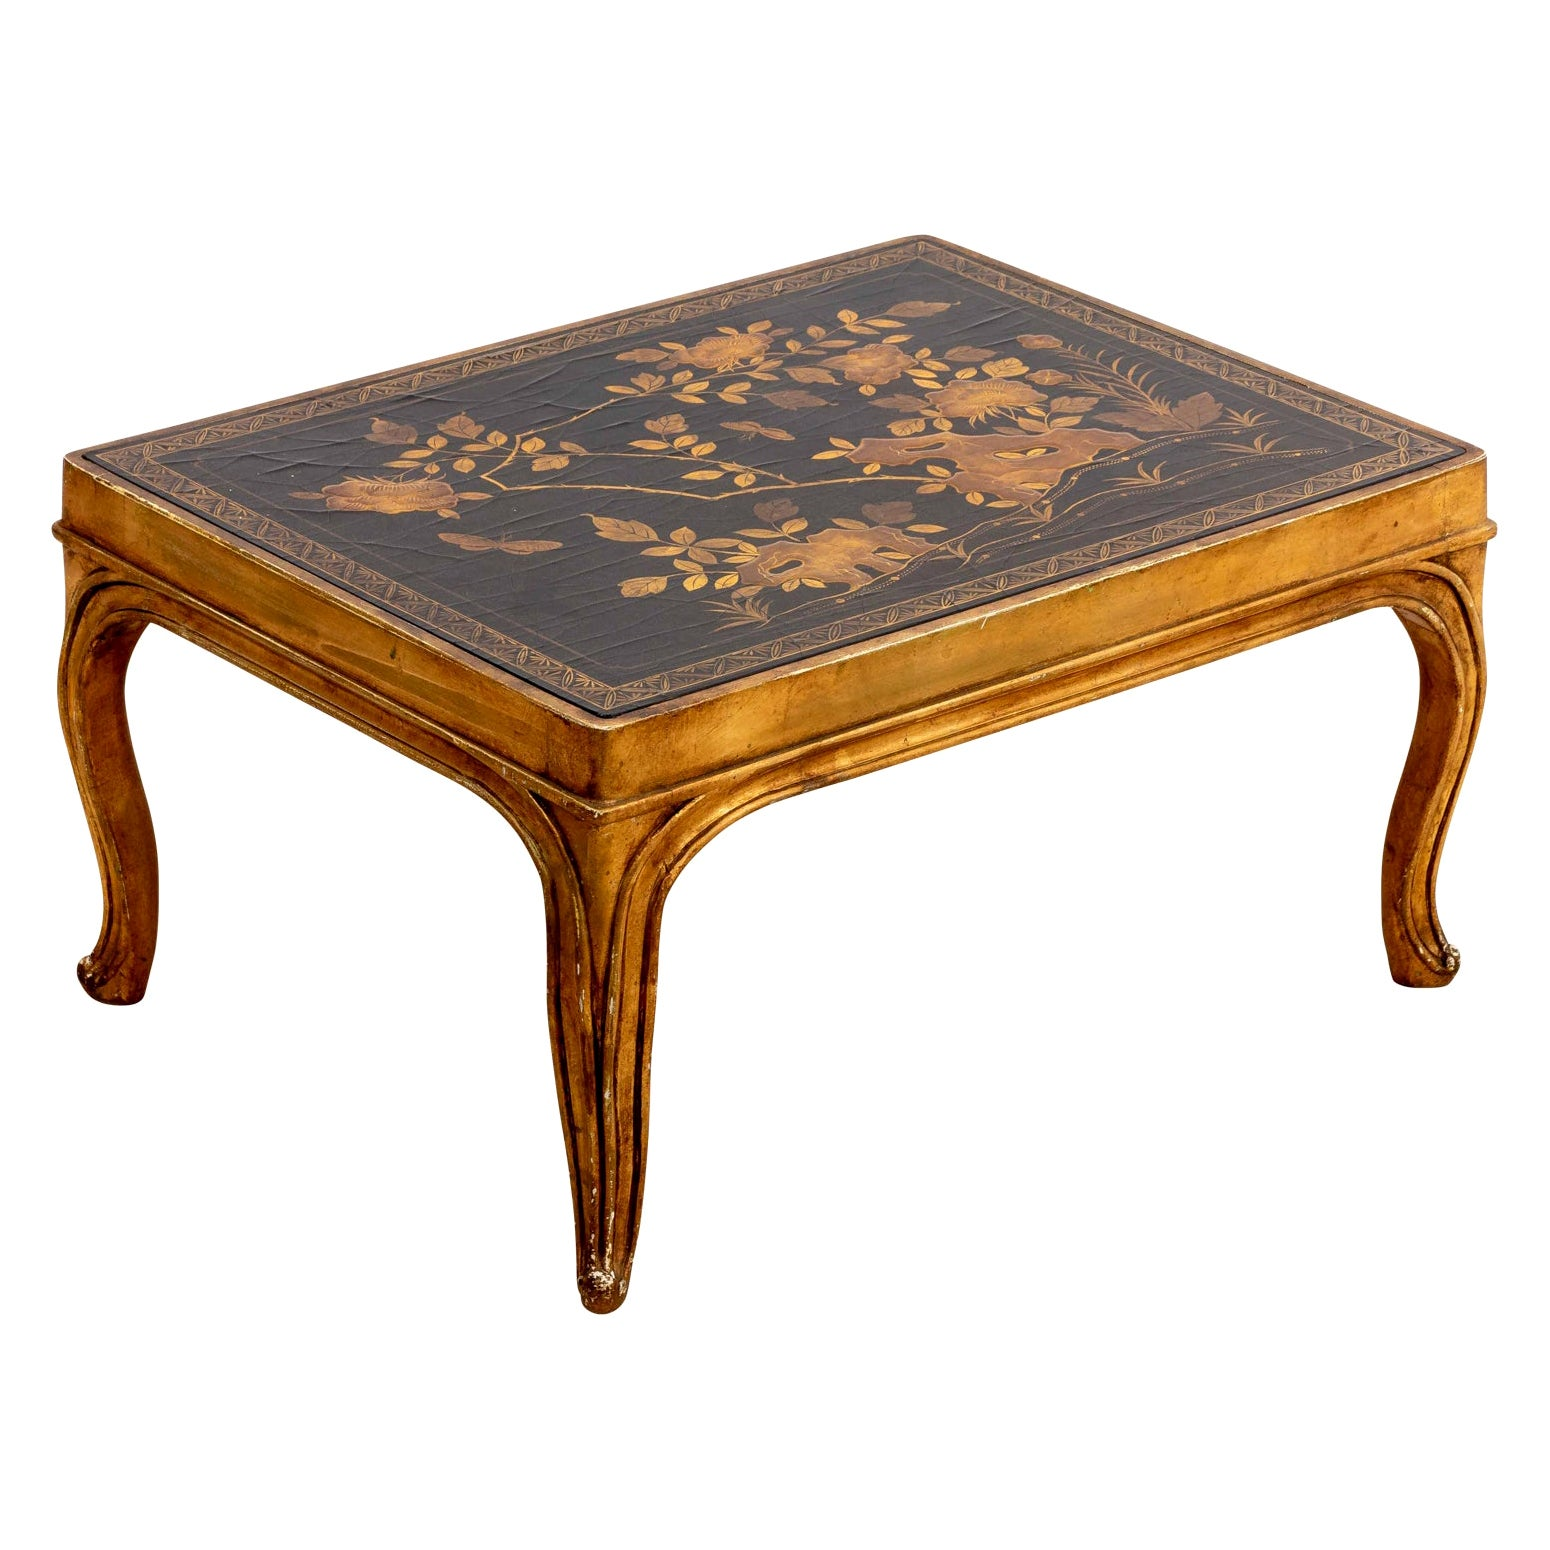 Chinese Lacquered Coffee Table with Floral Tabletop